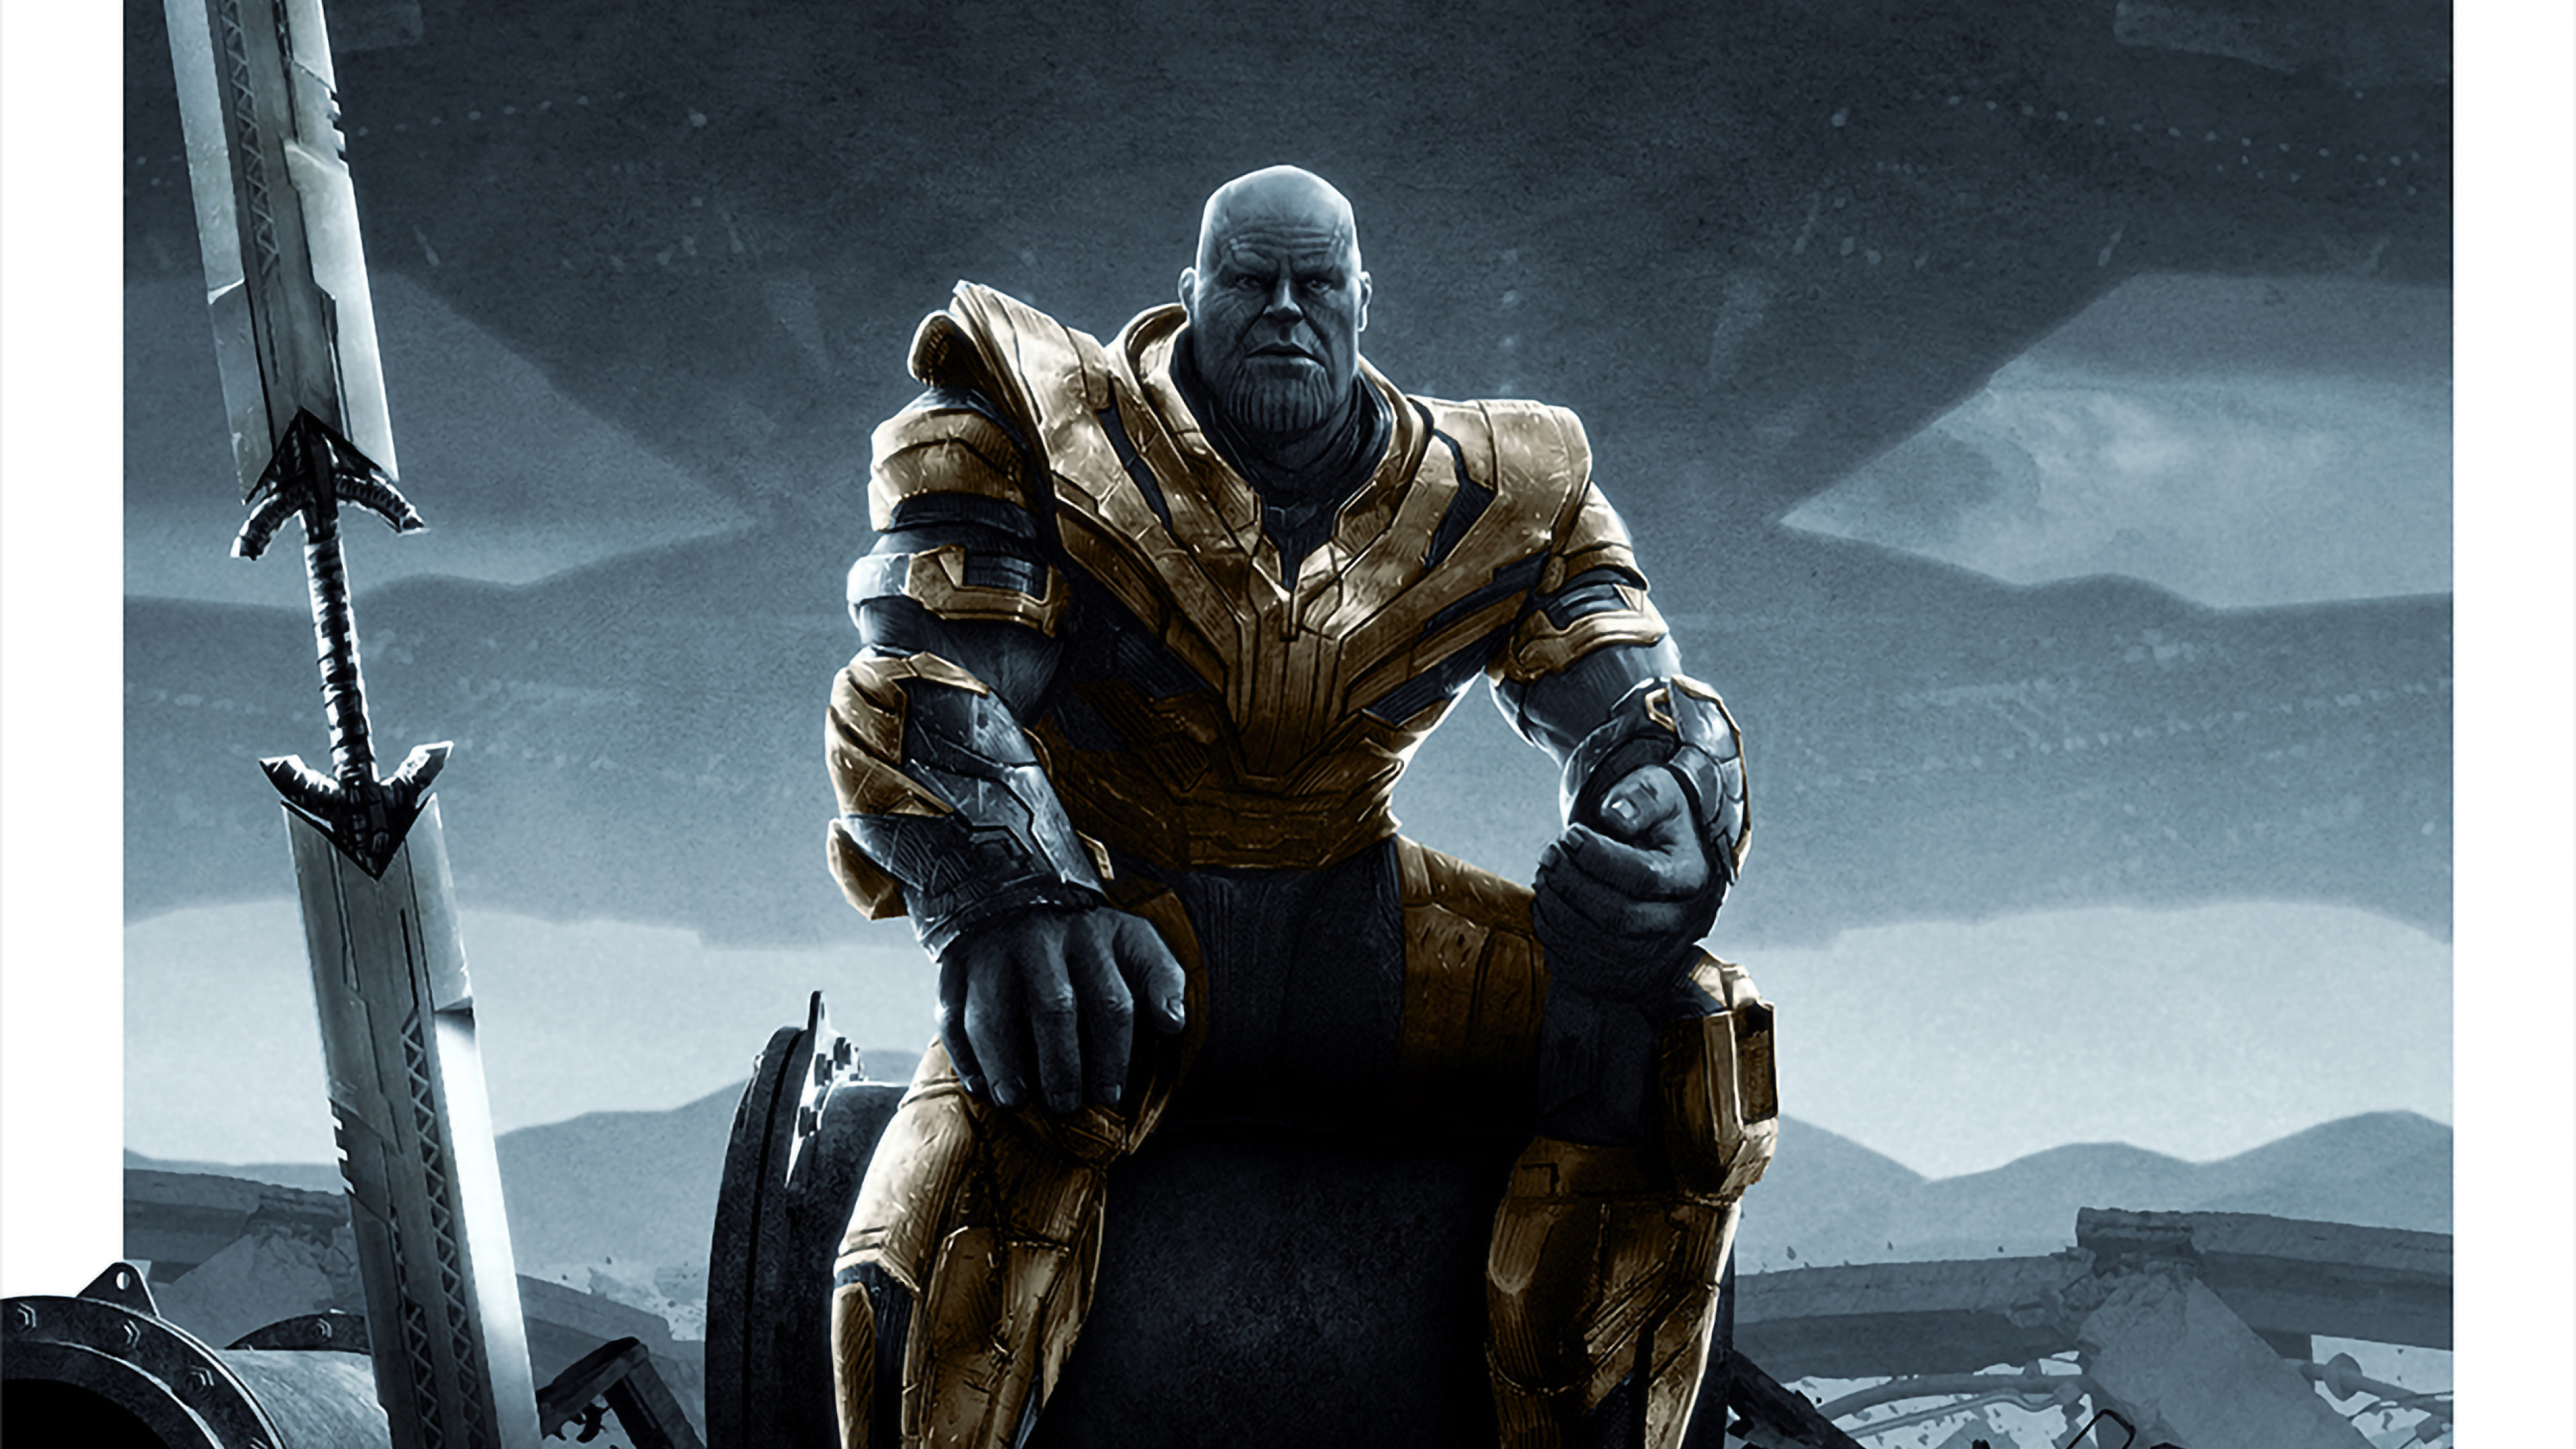 3840x2160 Thanos Sitting In Avengers Endgame 4k Wallpaper